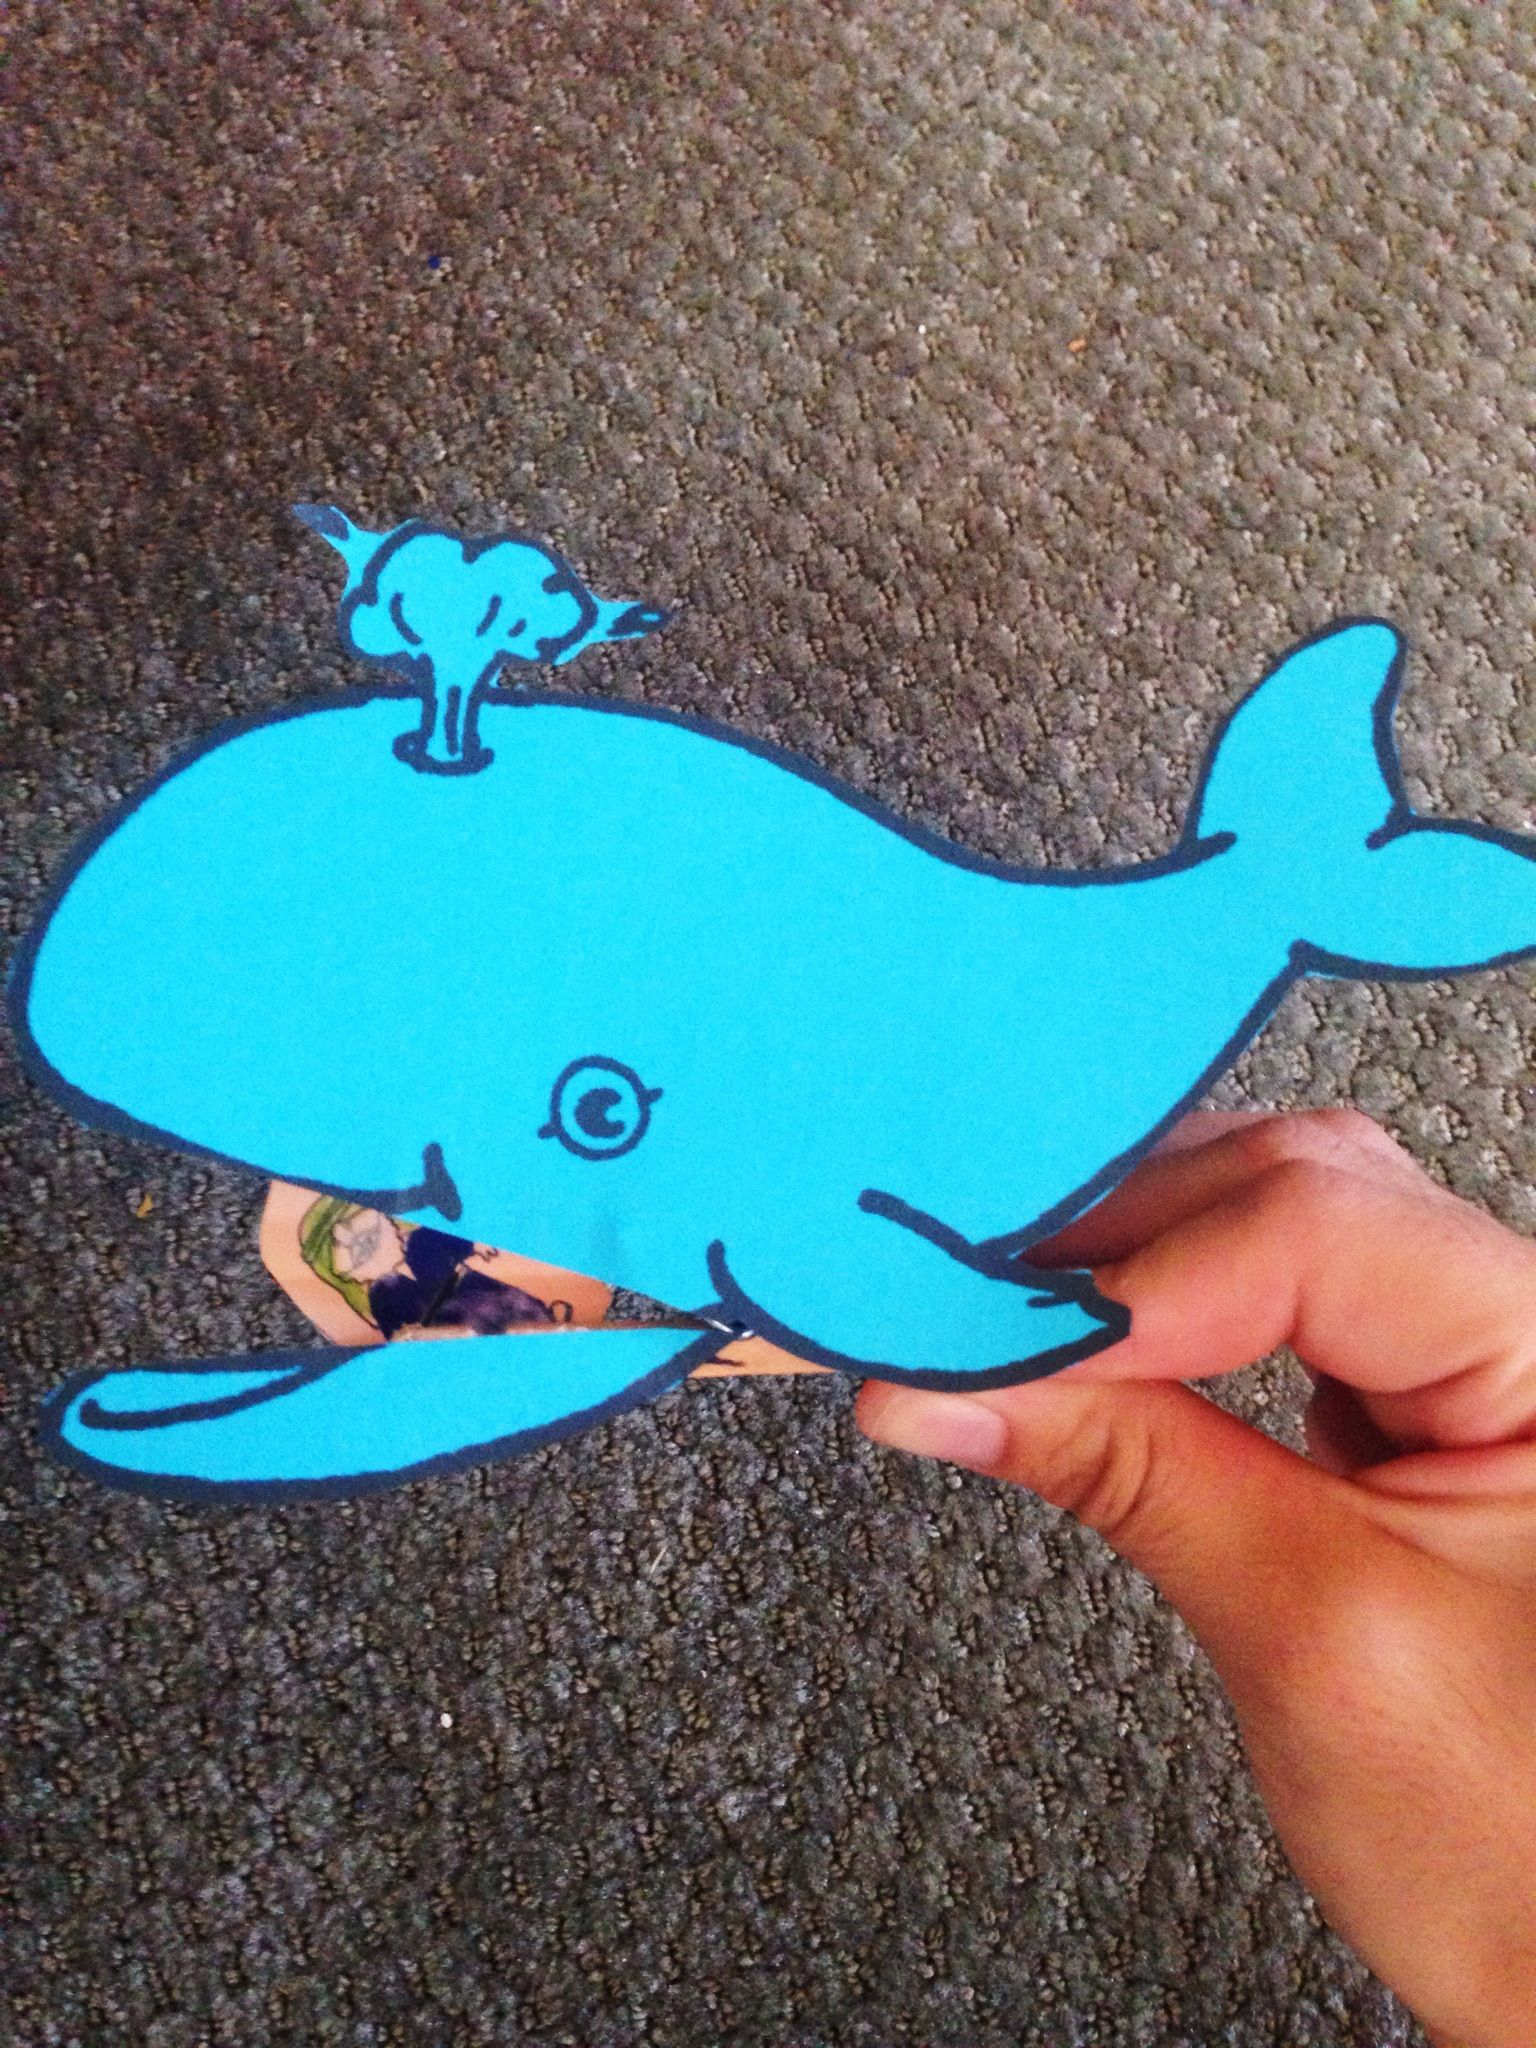 jonah craft ideas jonah and the big whale bible lesson easy craft 2256